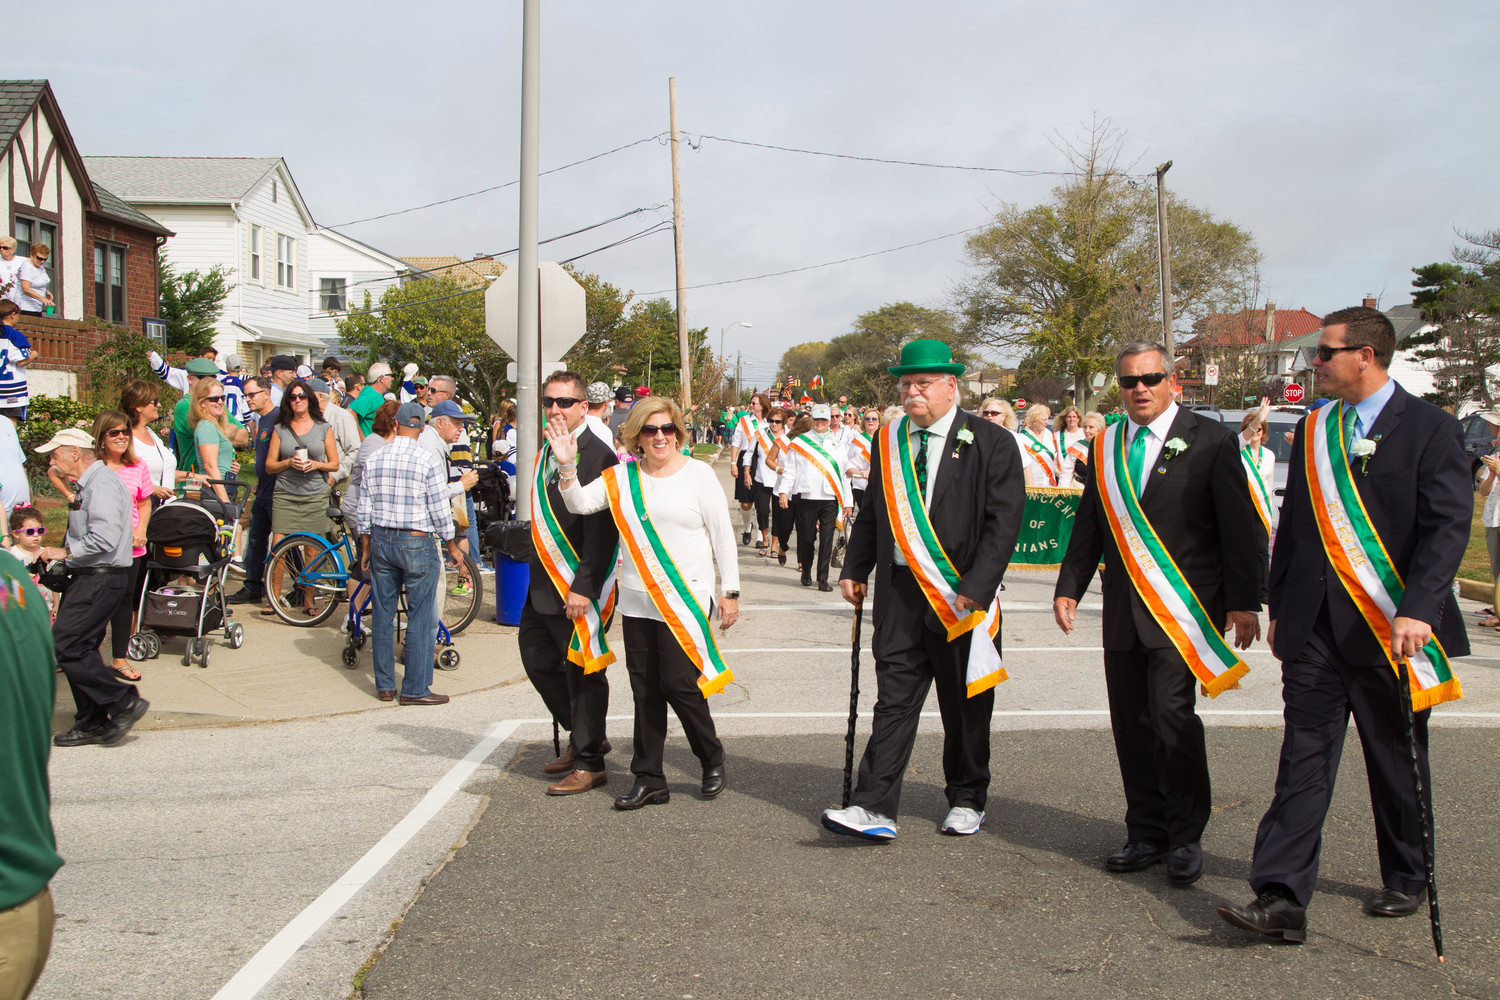 Veterans of Foreign Wars Post 1384 Commander Daniel McPhee, in hat, served as the grand marshal of last year's Saint Brendan the Navigator Irish Heritage Day Parade alongside his aides, AOH members Edward Henry, Joan Duffy, Malachy McGarry and Brian Wheeler.